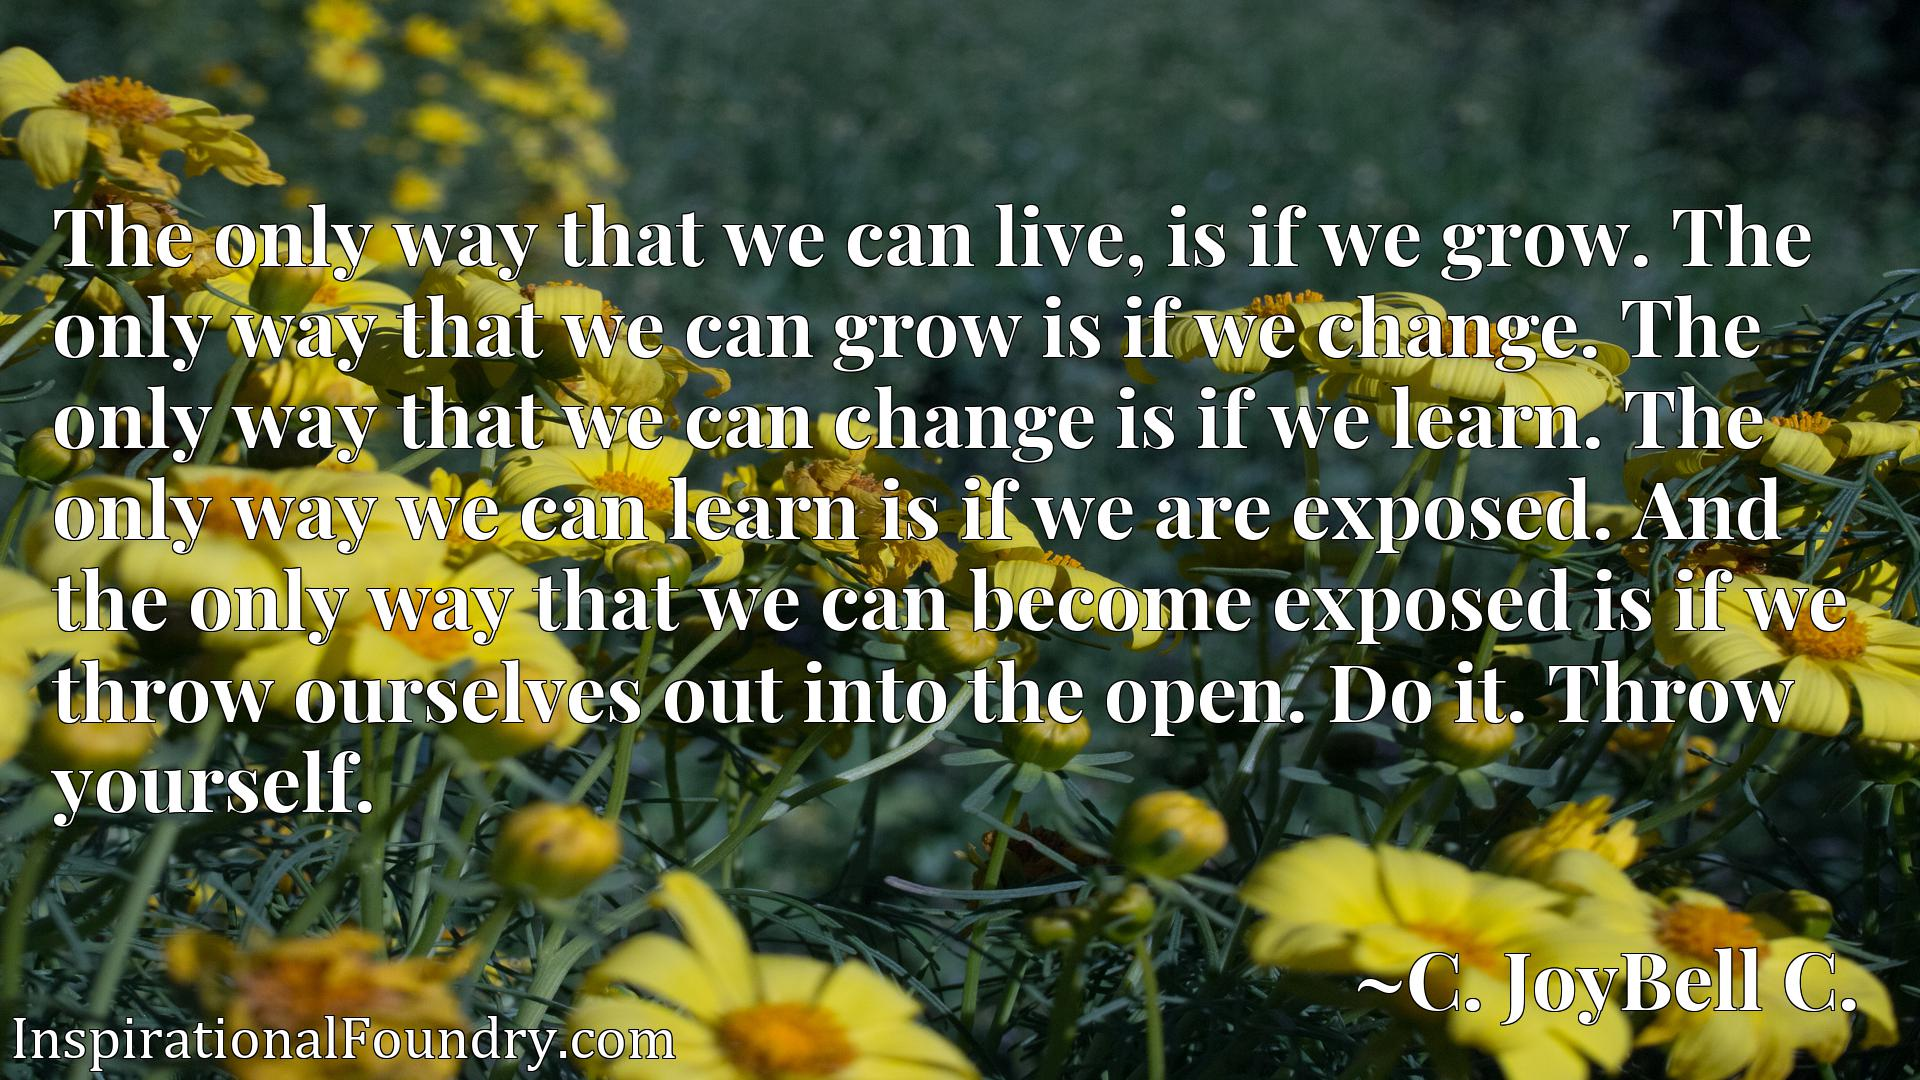 The only way that we can live, is if we grow. The only way that we can grow is if we change. The only way that we can change is if we learn. The only way we can learn is if we are exposed. And the only way that we can become exposed is if we throw ourselves out into the open. Do it. Throw yourself.